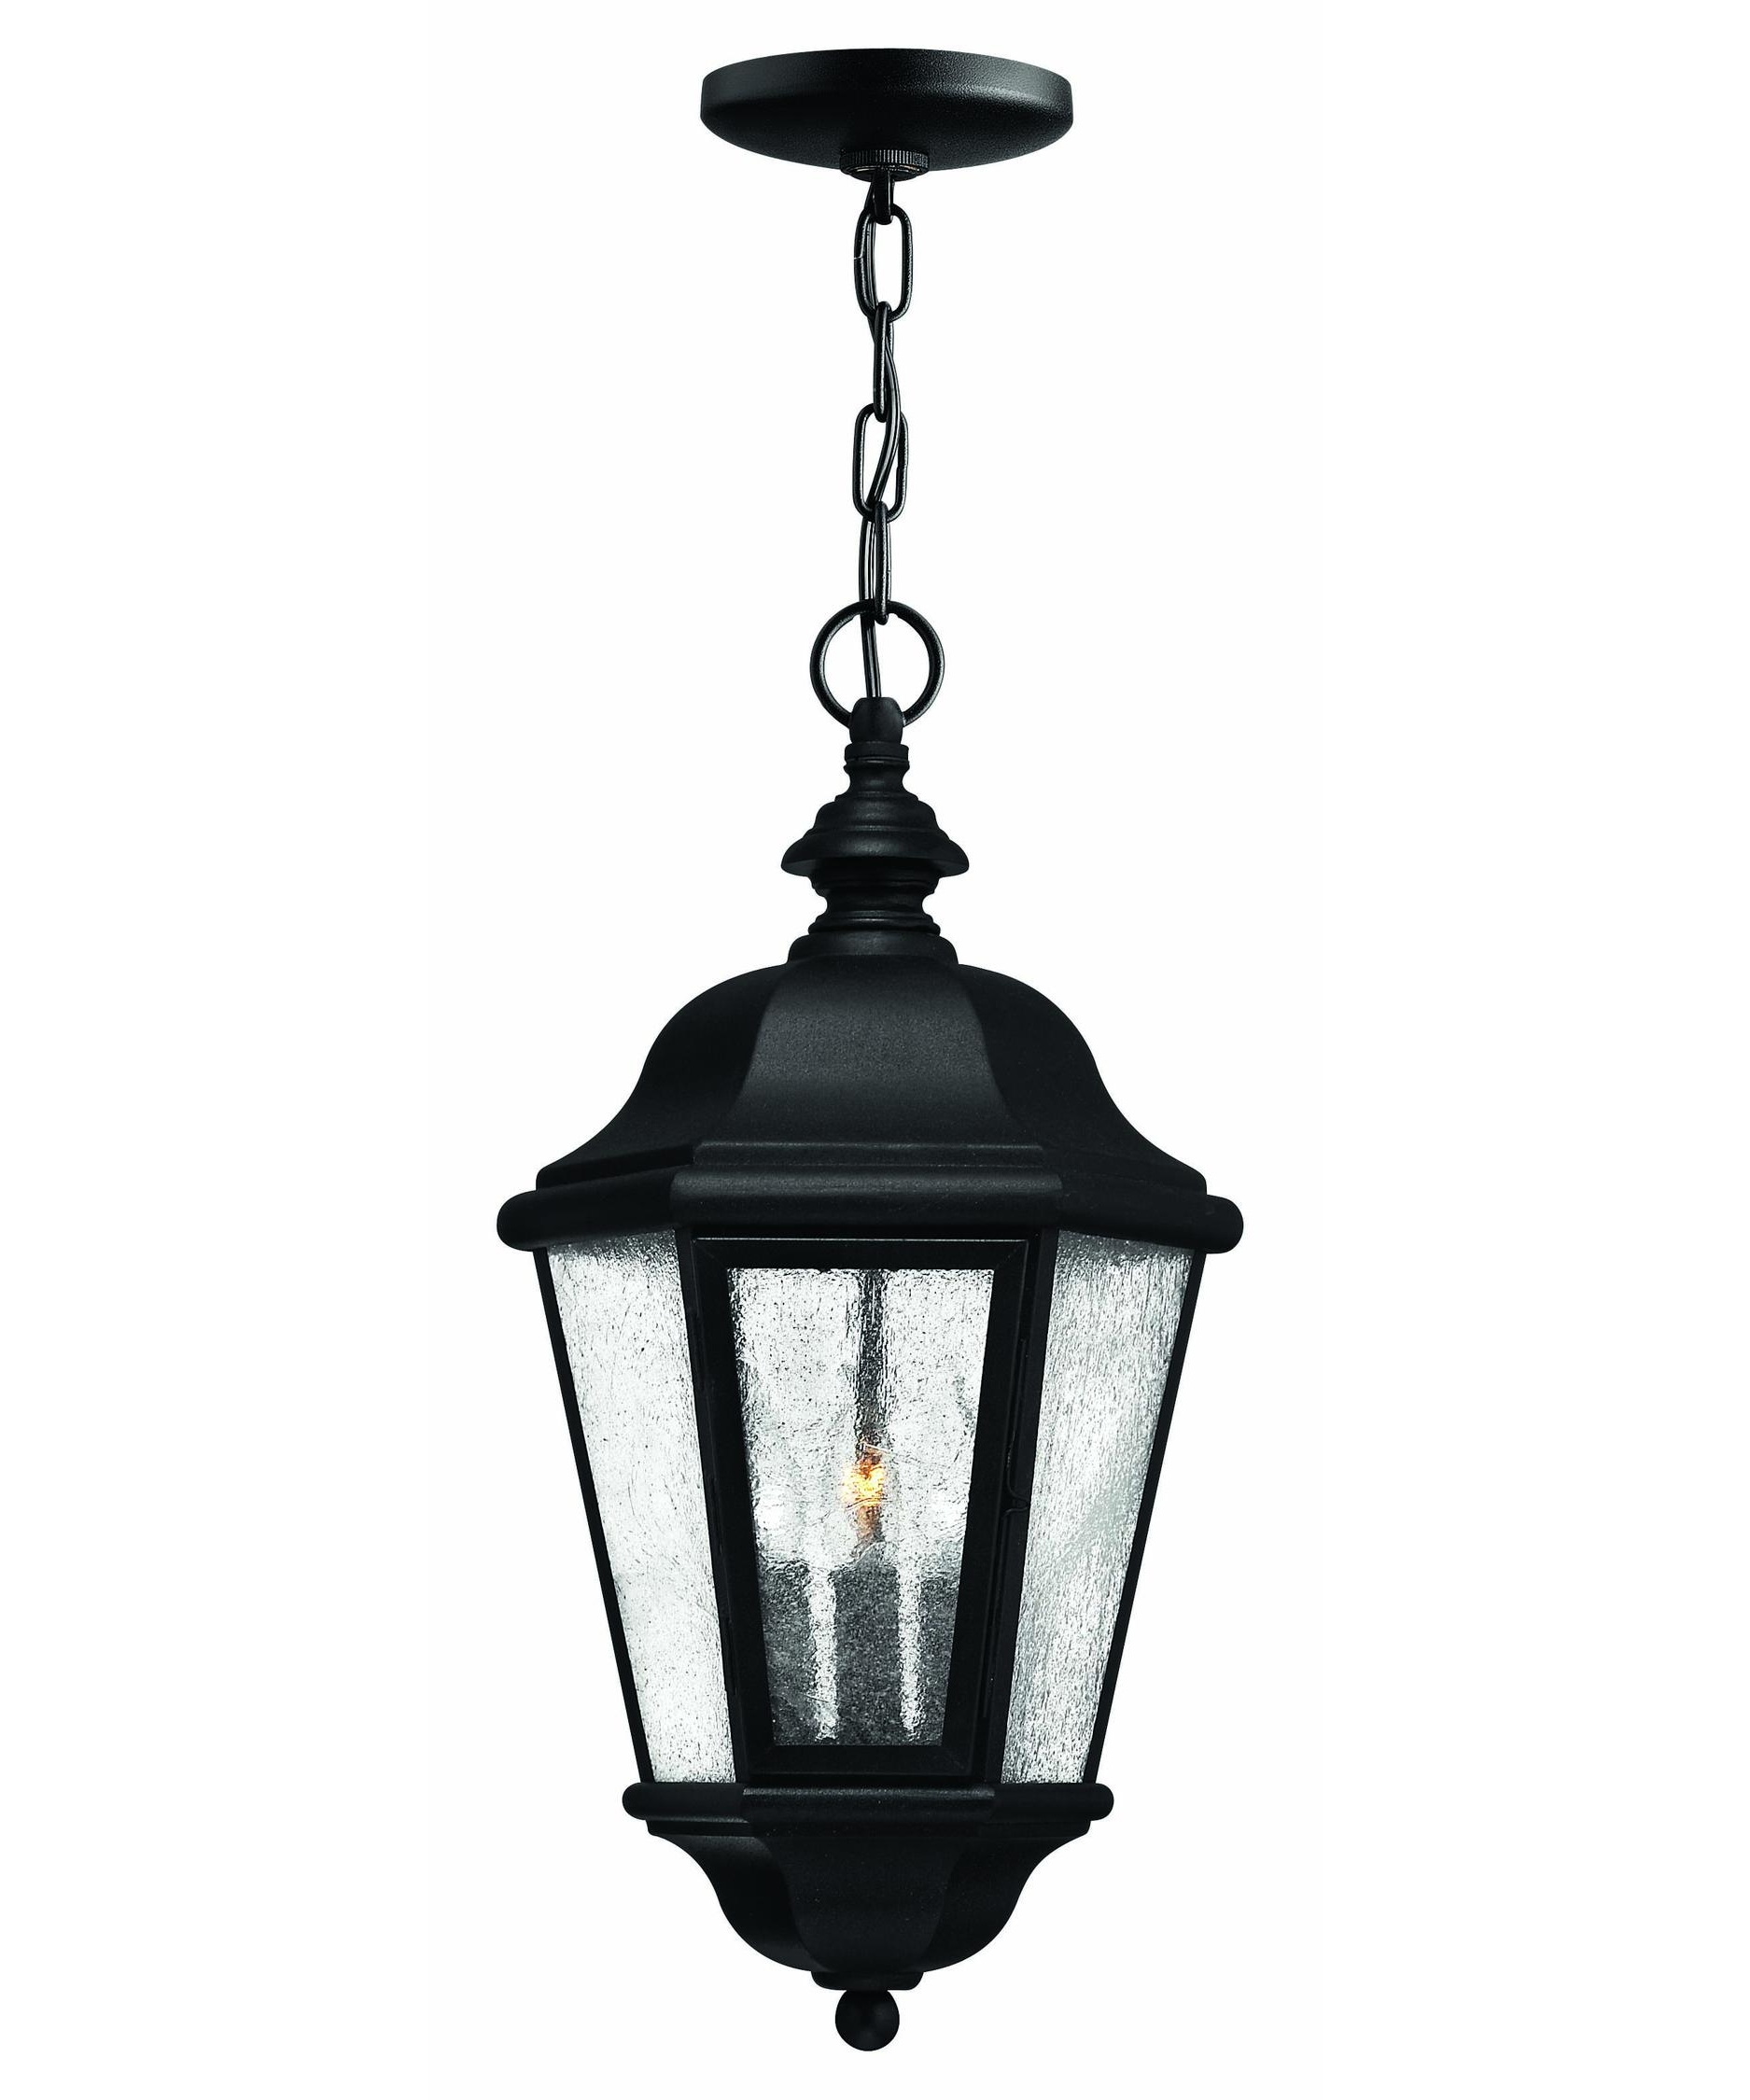 Hinkley Lighting 1672 Edgewater 10 Inch Wide 3 Light Outdoor Hanging With Regard To Most Recently Released Outdoor Hanging Glass Lights (View 5 of 20)